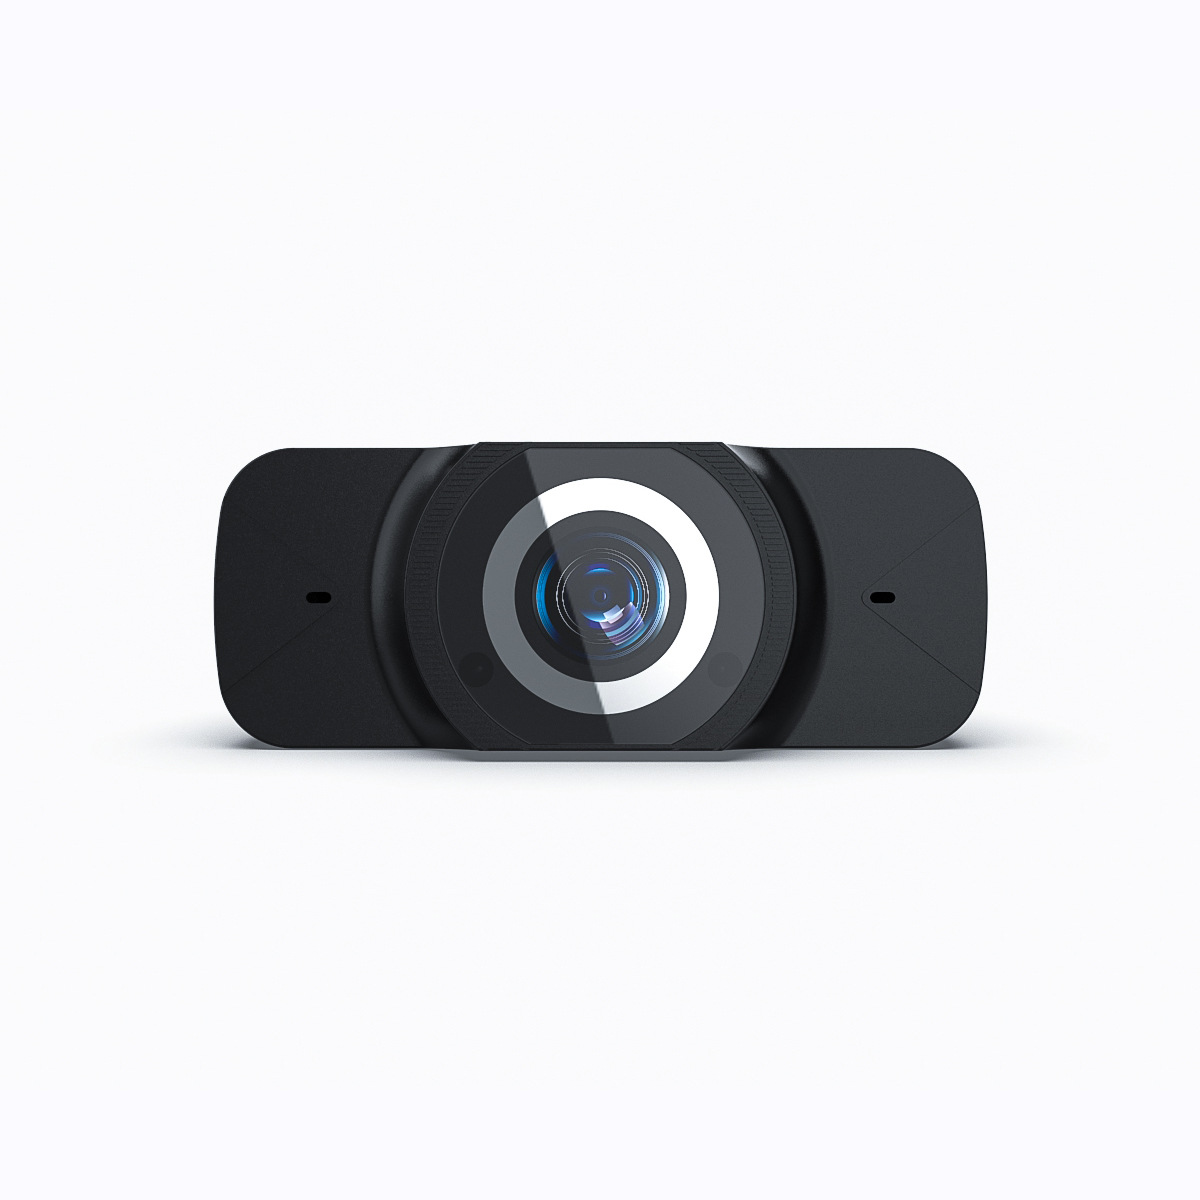 USB Webb Camera W8 Audio acquisition supported F37 million high-definition image sensor camara webcam for online teaching